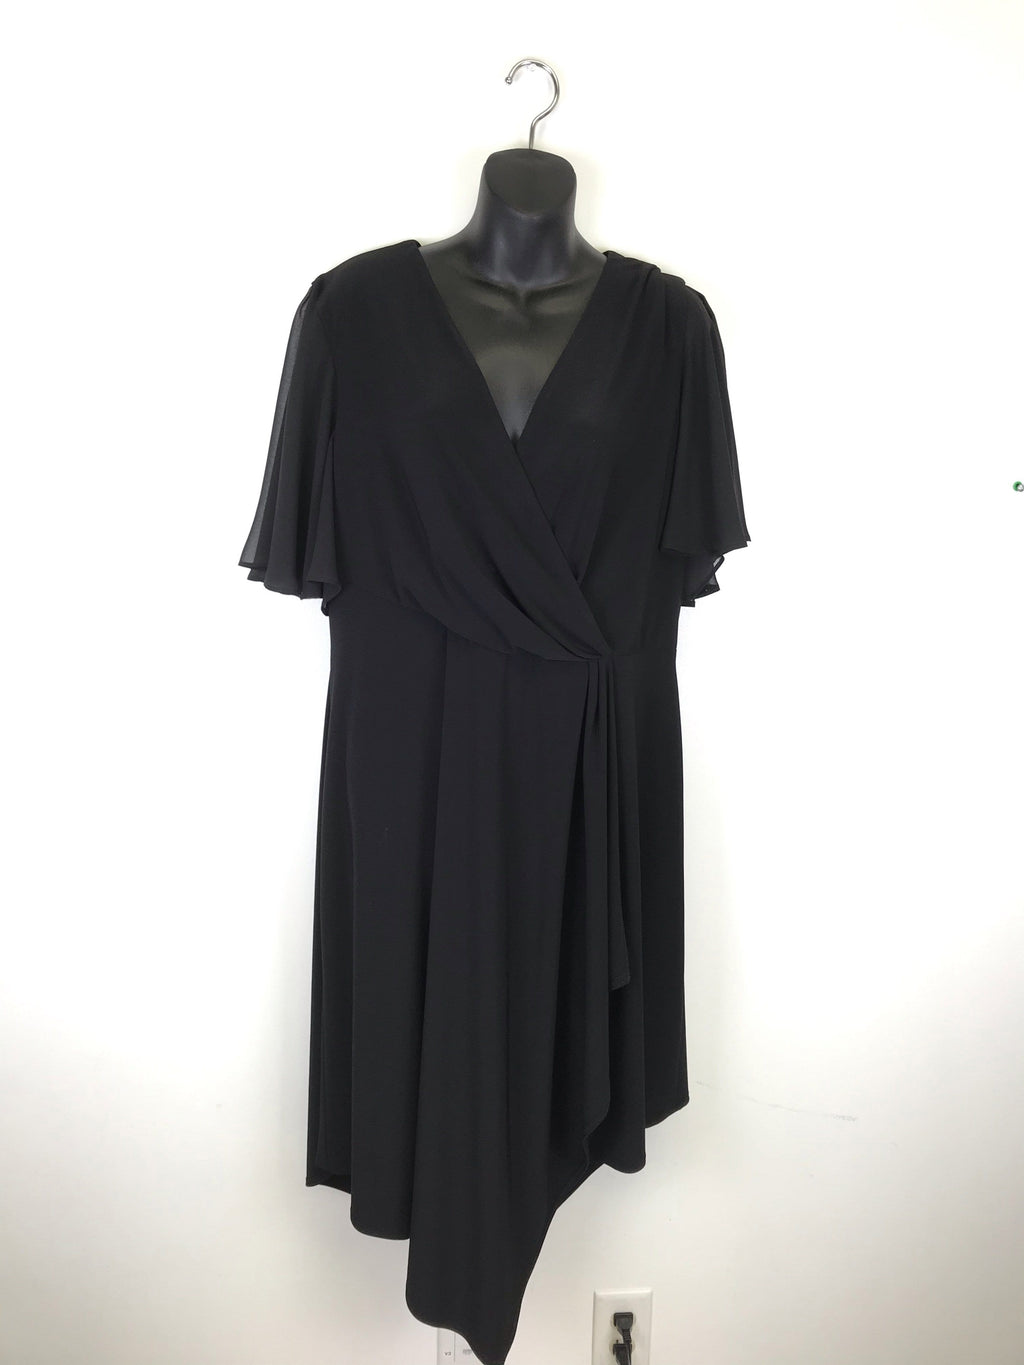 Joseph Ribkoff Dress Black 201262